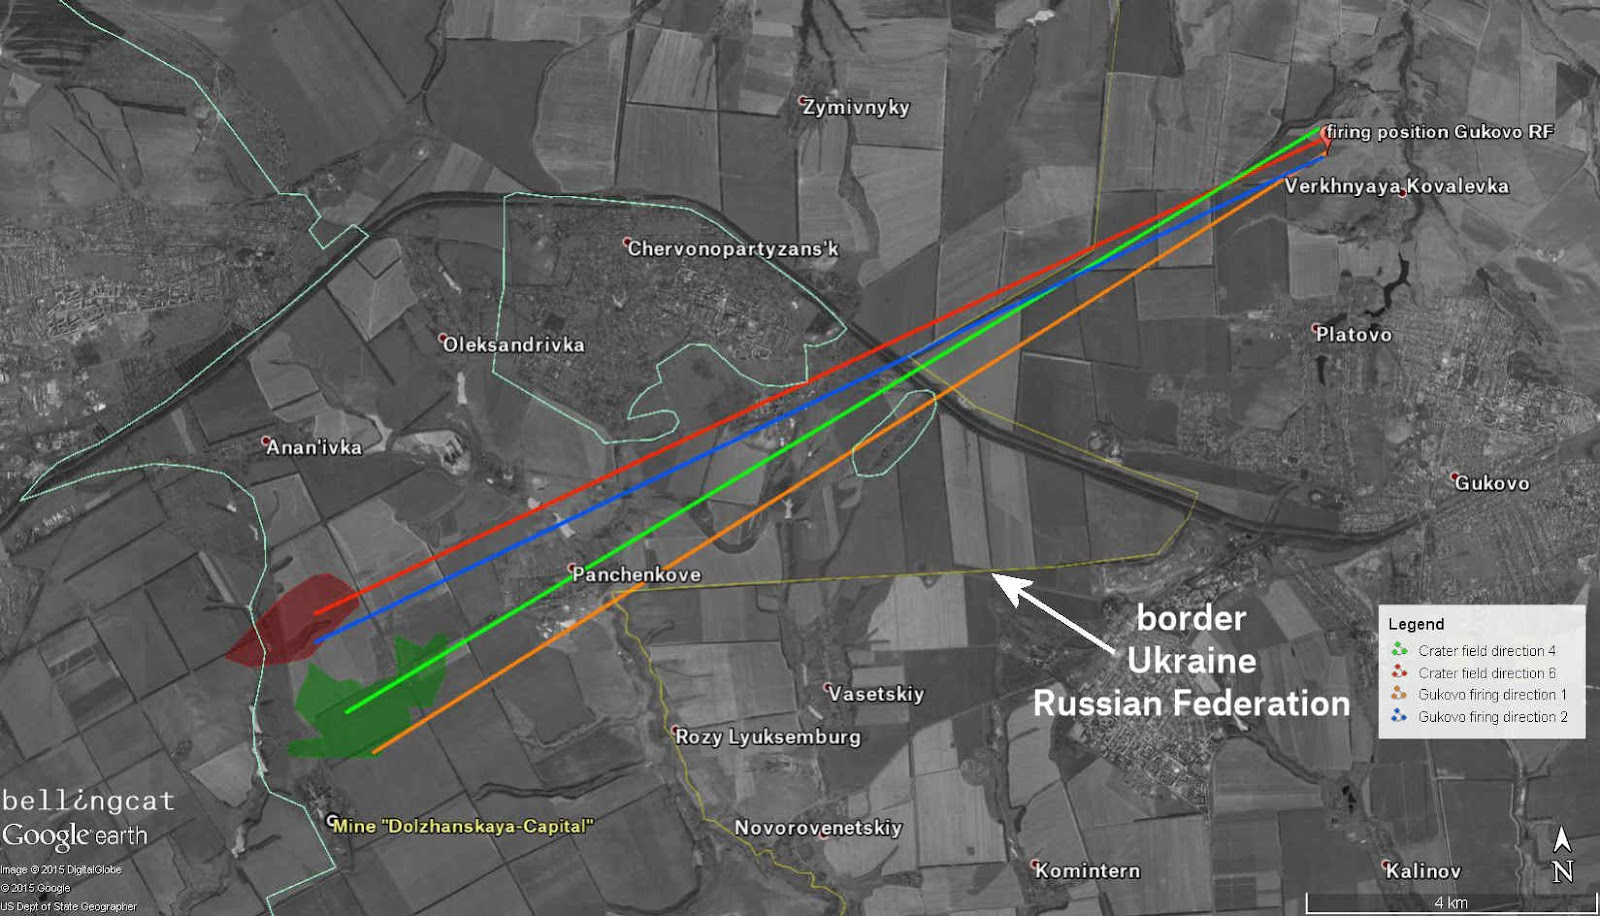 Trajectories from the firing position north of Platovo to the target area around the Dolzhanskaya-Capital mine